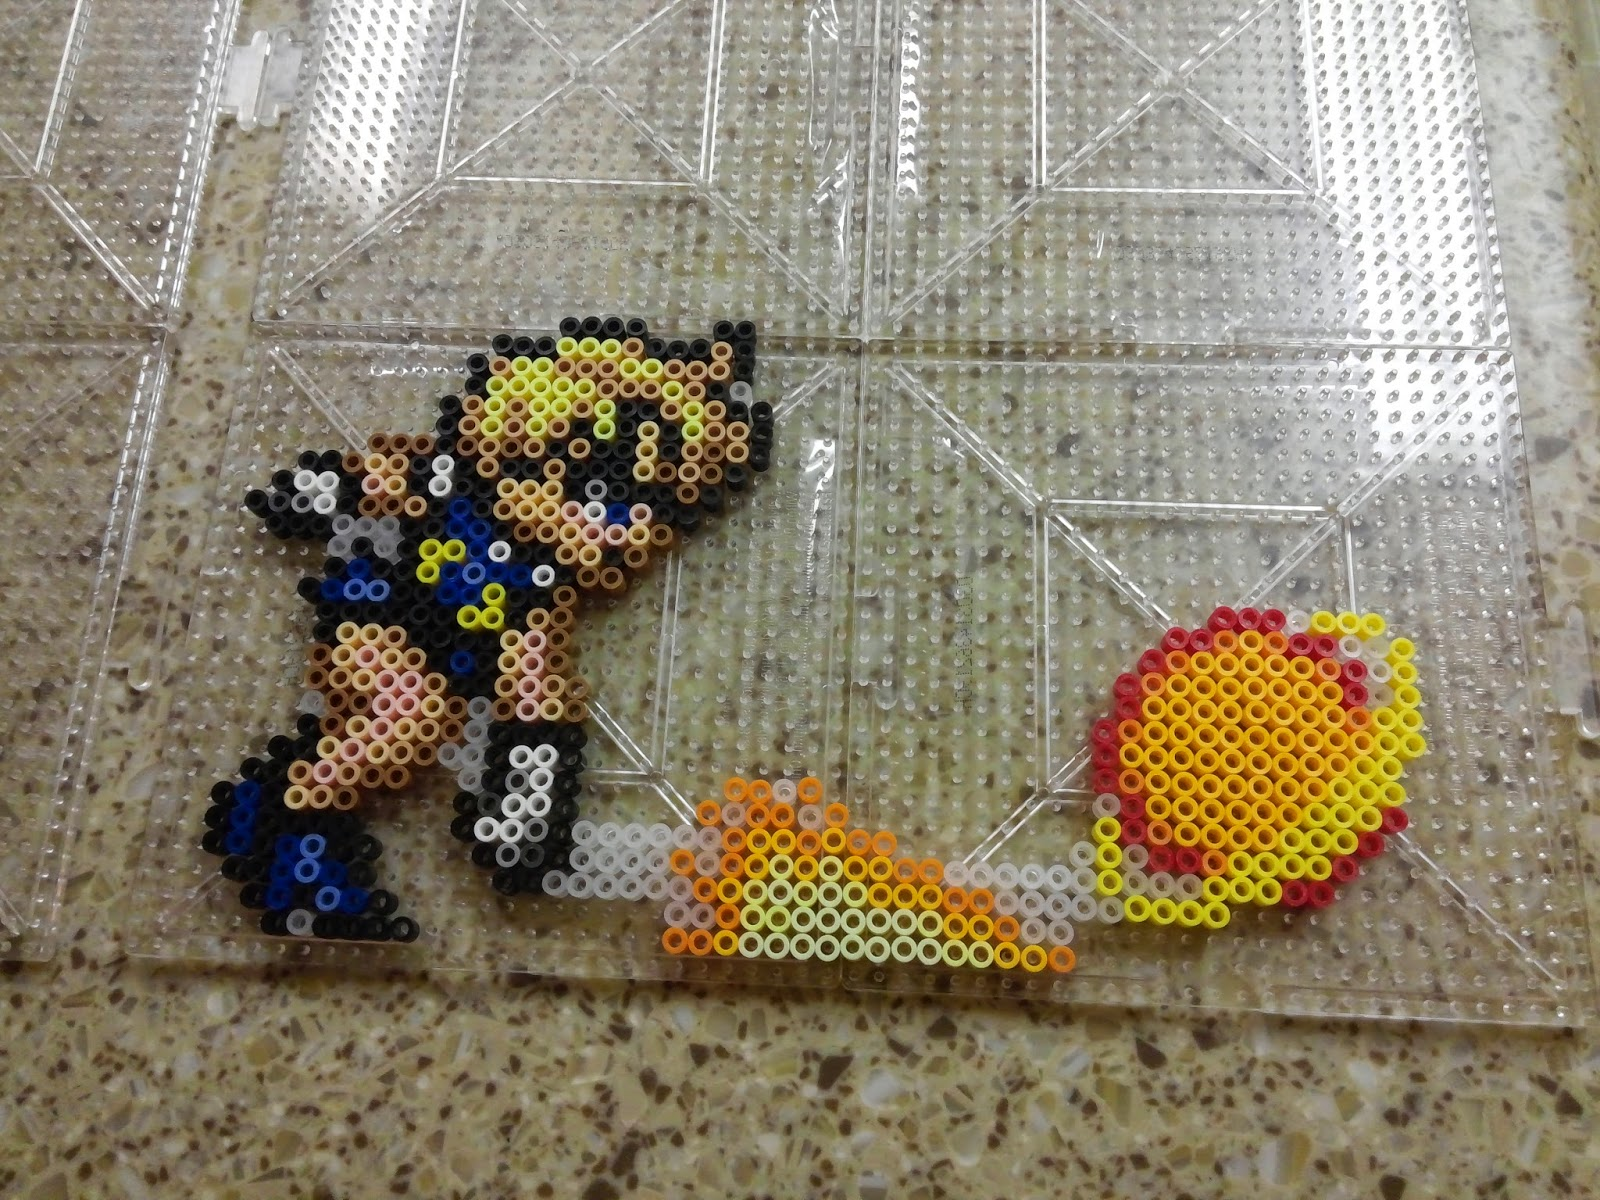 perler bead projects Perler beads - bees - for kids' arts and crafts projects are available by the bucket in the widest variety of colors, shapes, sizes, and styles at jo-ann's.